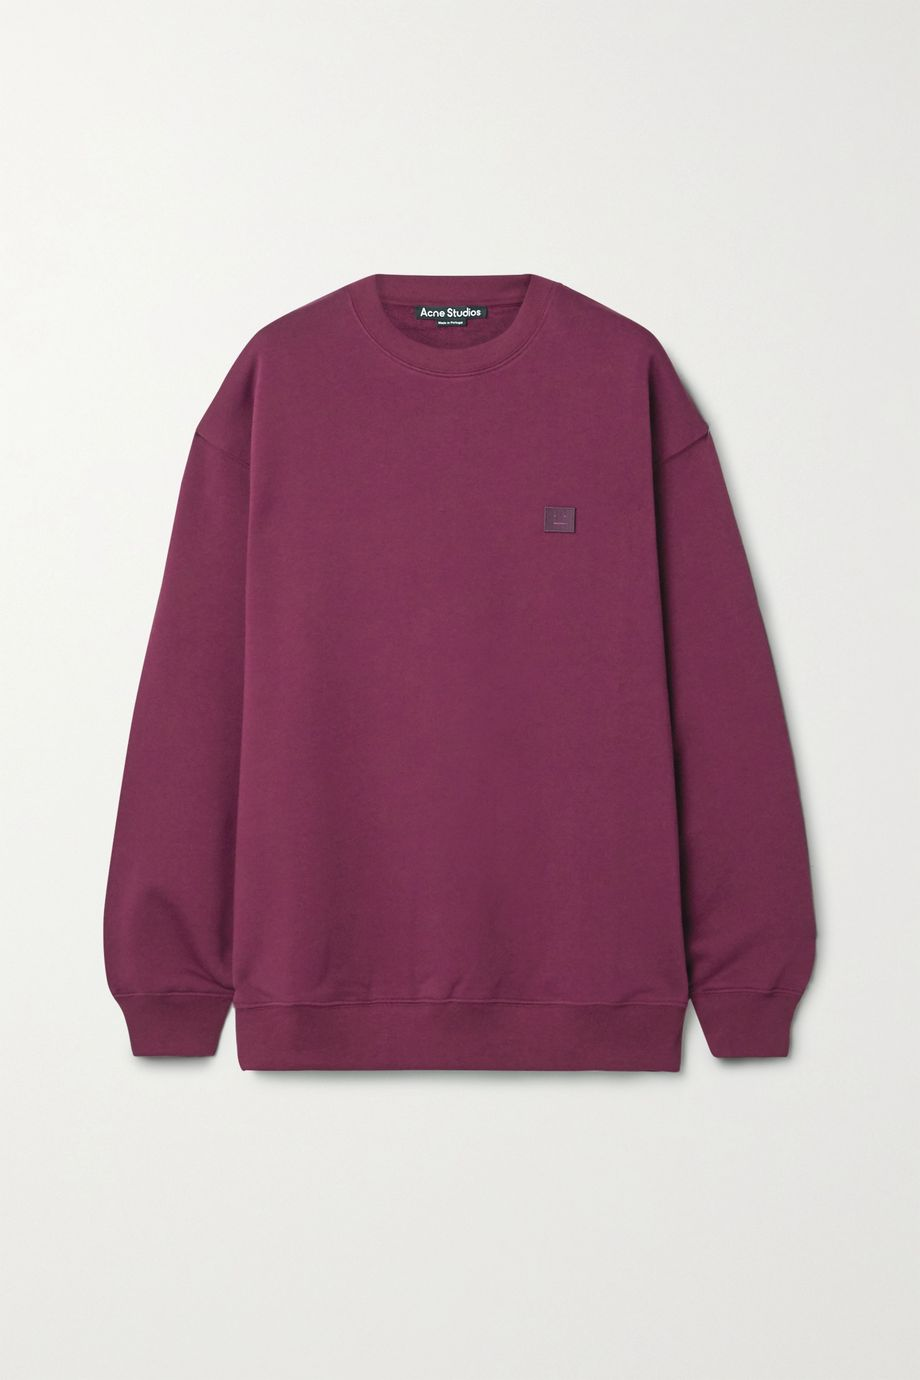 Acne Studios Appliquéd cotton-jersey sweatshirt